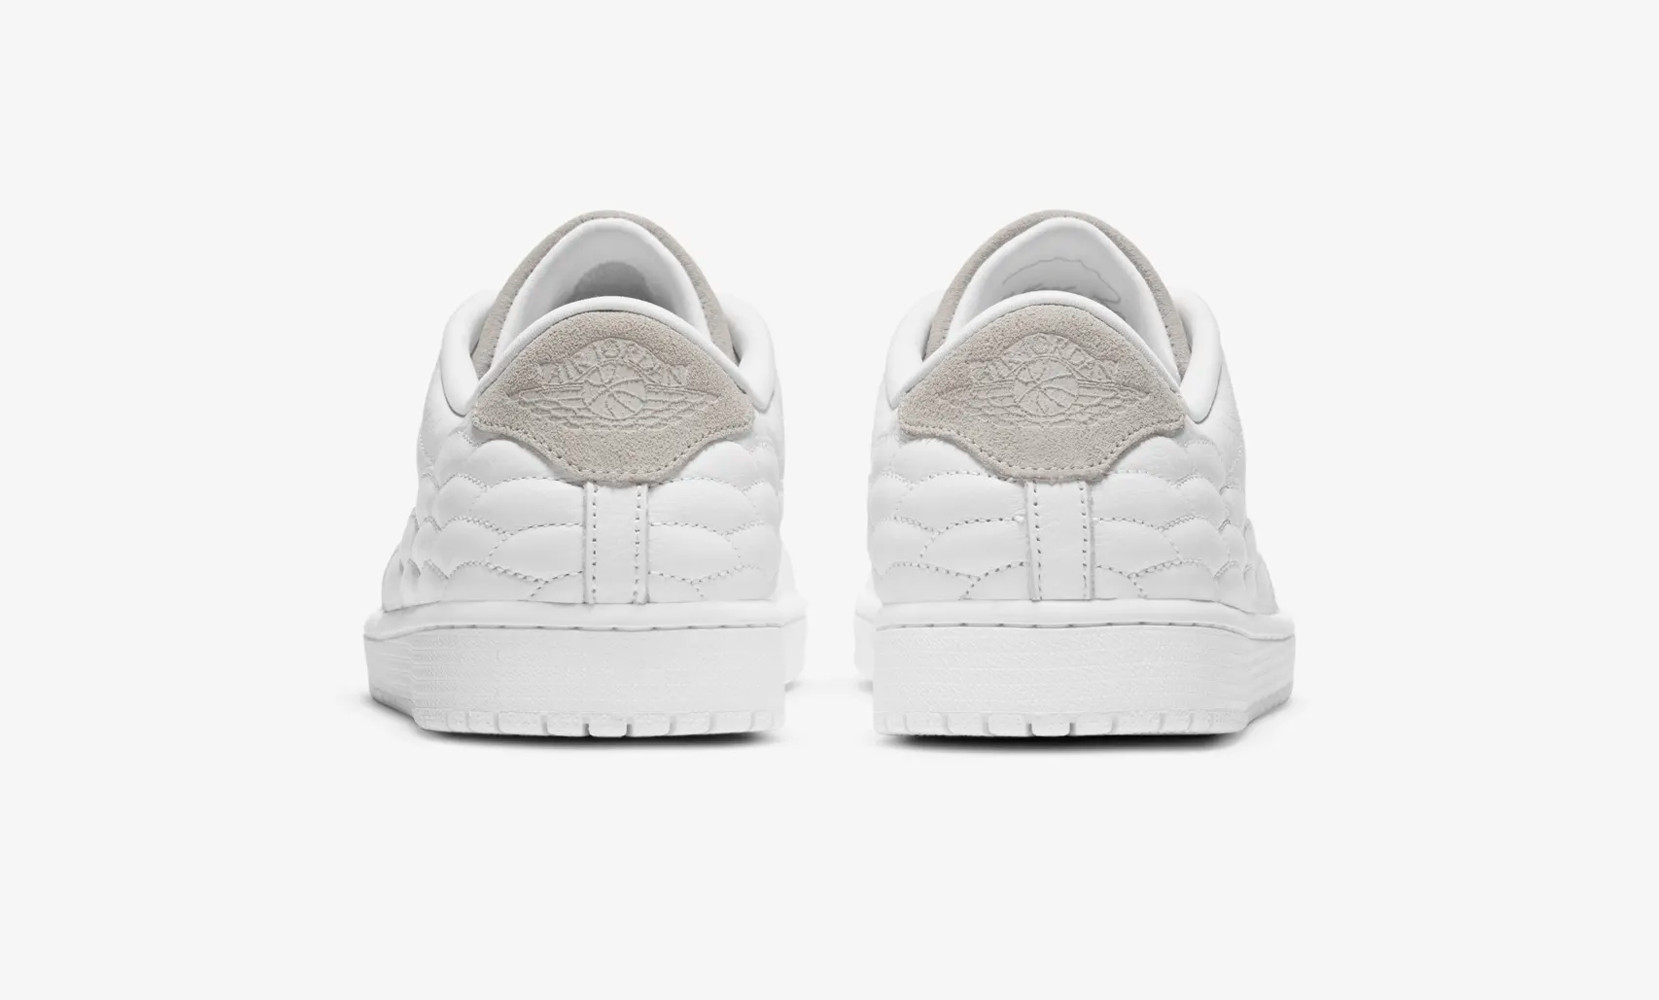 Air Jordan 1 Centre Court White on White